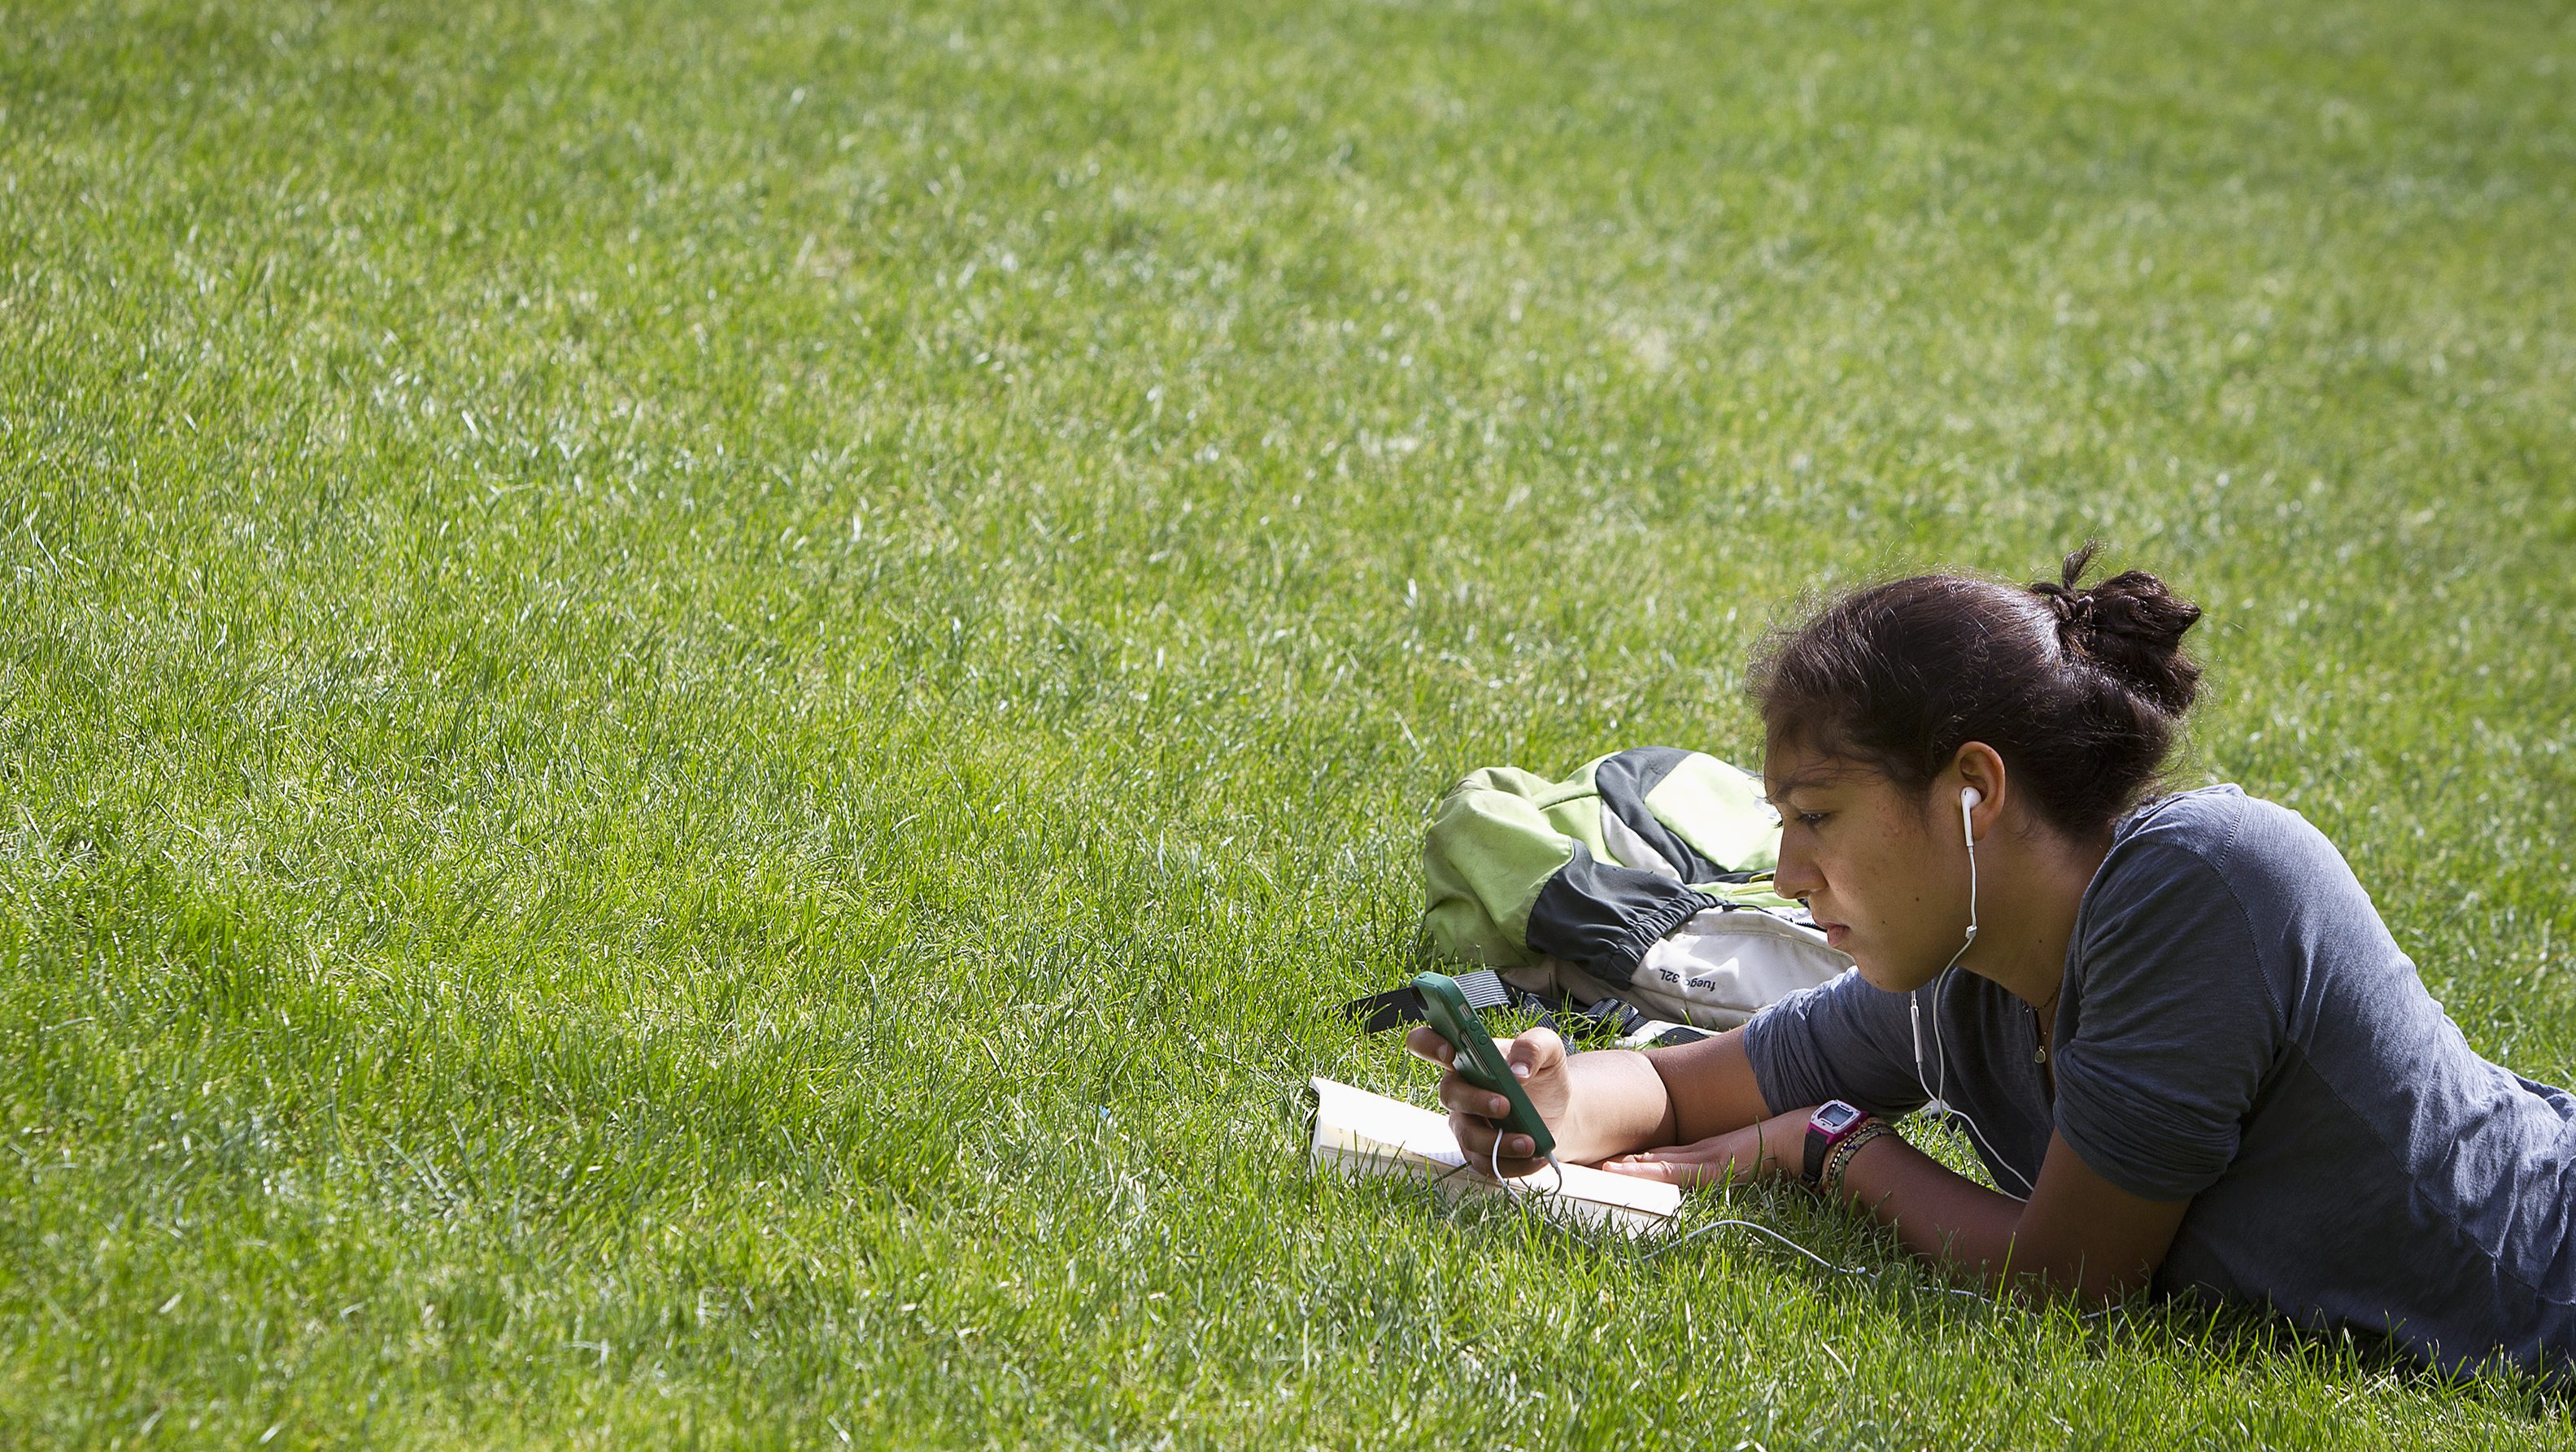 A woman lies in the grass reading a book and listening to music at Columbia University in New York, April 14, 2014. REUTERS/Carlo Allegri (UNITED STATES - Tags: SOCIETY ENVIRONMENT EDUCATION) - RTR3LA5V